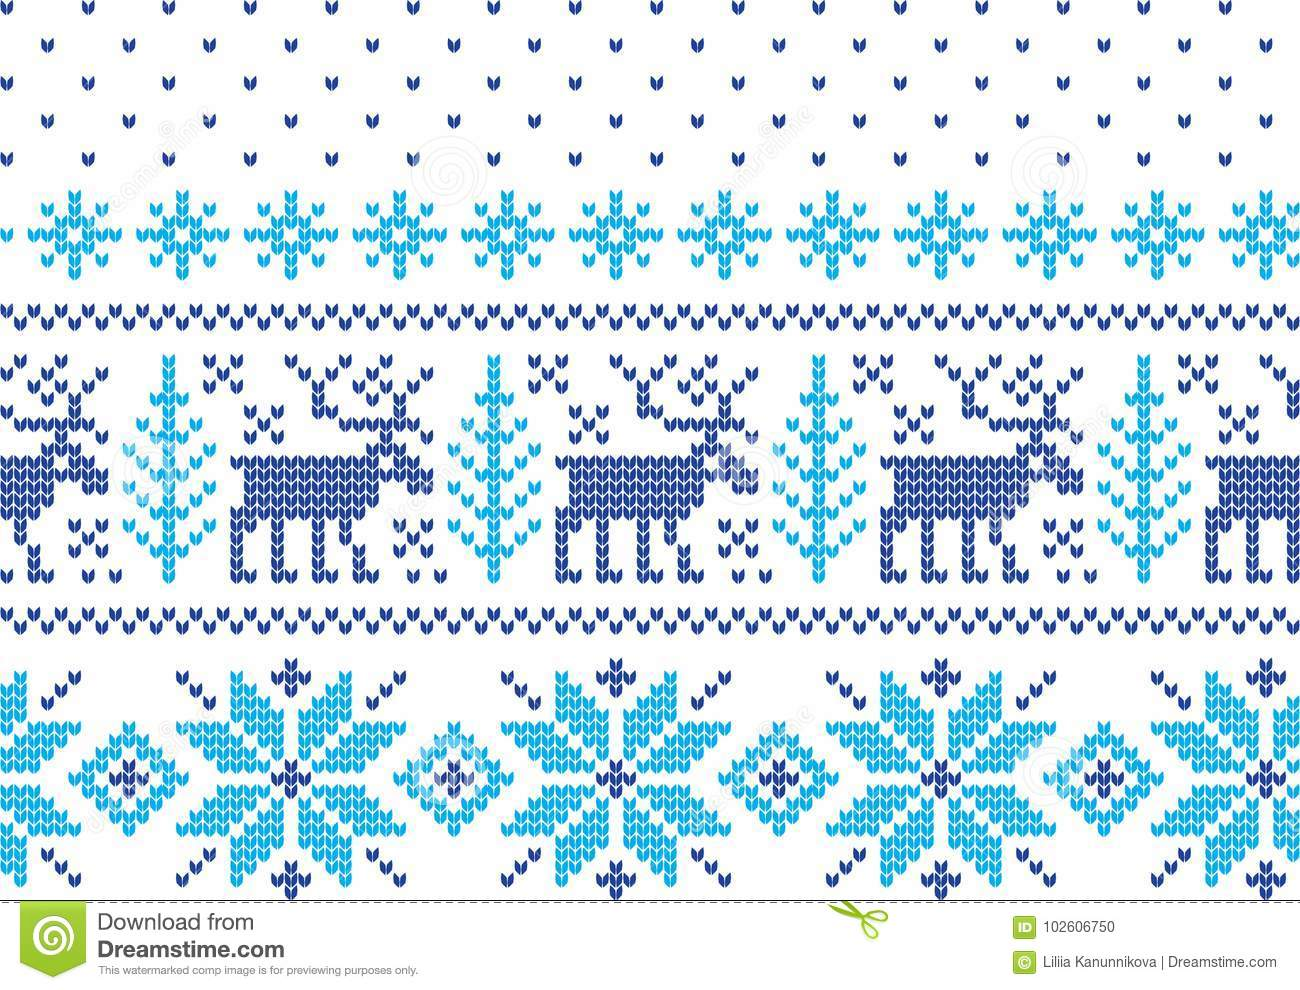 7d3c71d2b3973 Winter Holiday Seamless Knitting Pattern with a Christmas Trees. Christmas Knitting  Sweater Design. Wool Knitted Texture